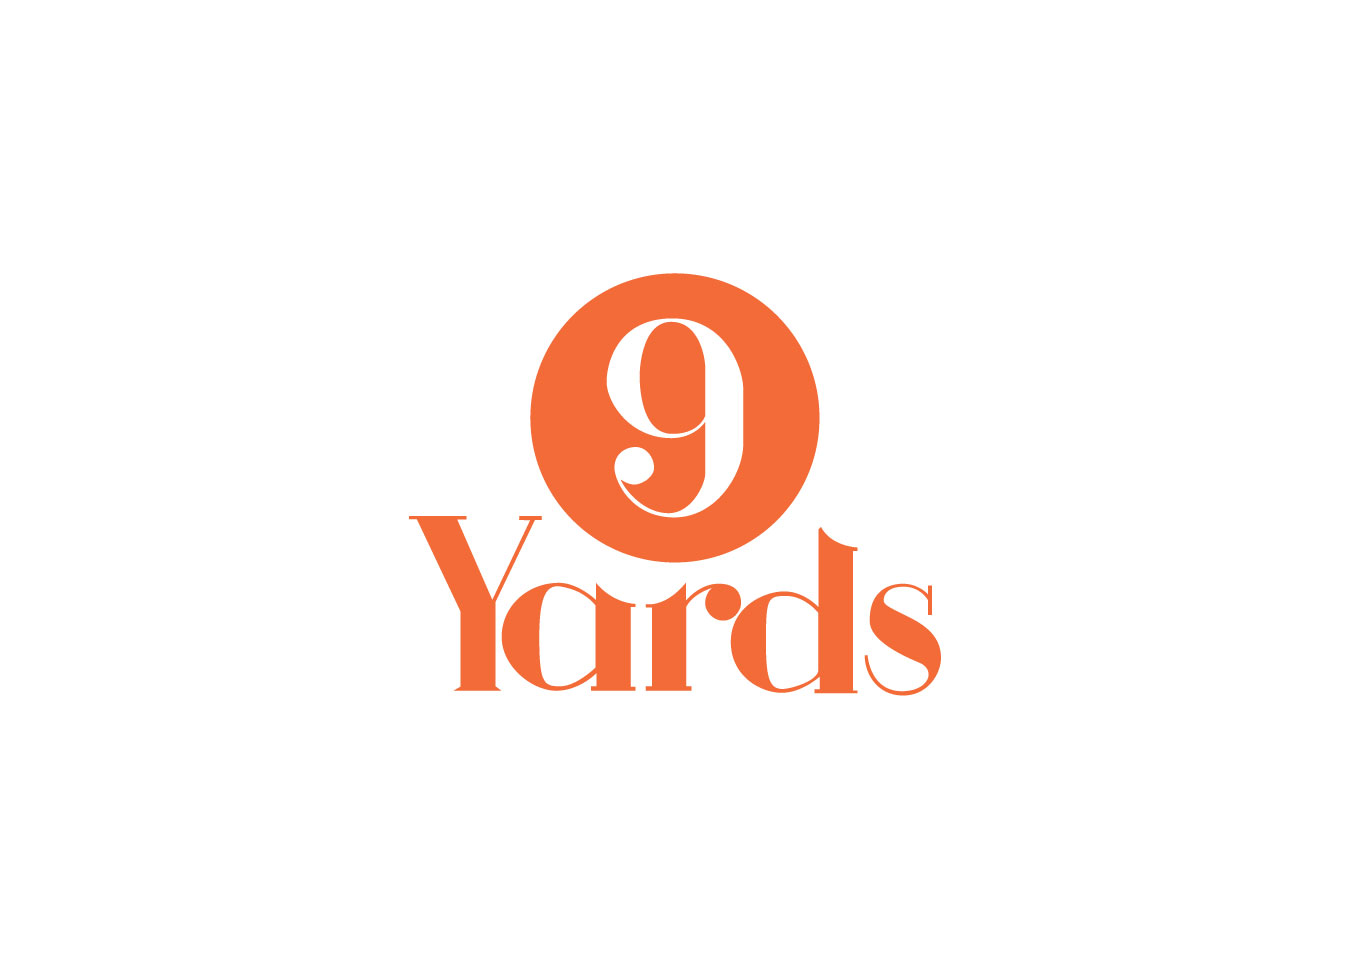 9-Yards-logo